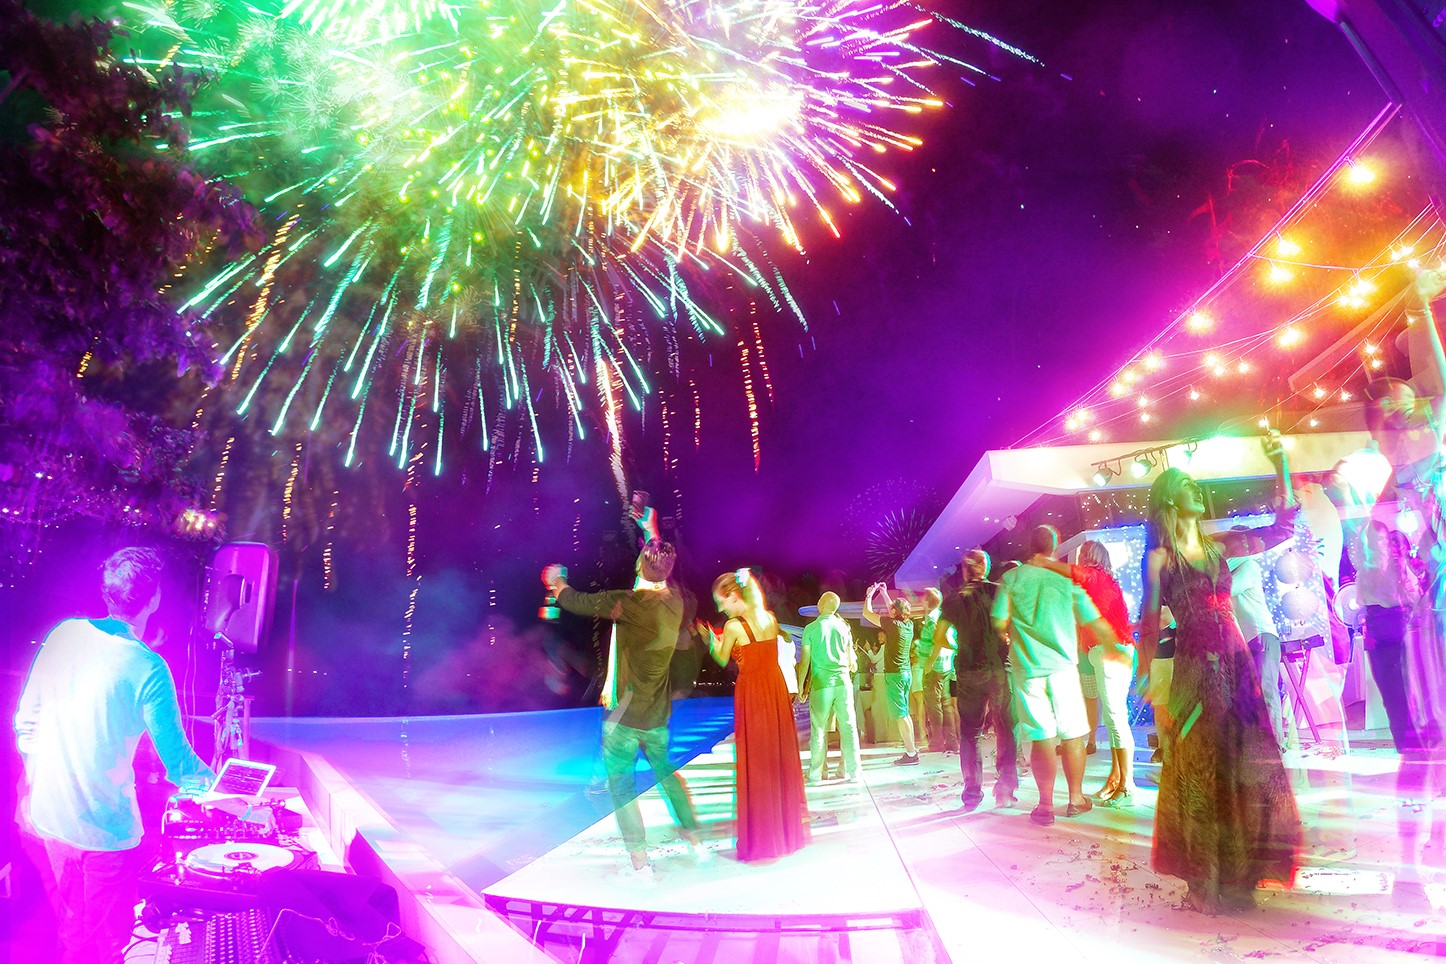 CELEBRATE THE 2017 FESTIVE SEASON WITH KATA ROCKS PHUKET